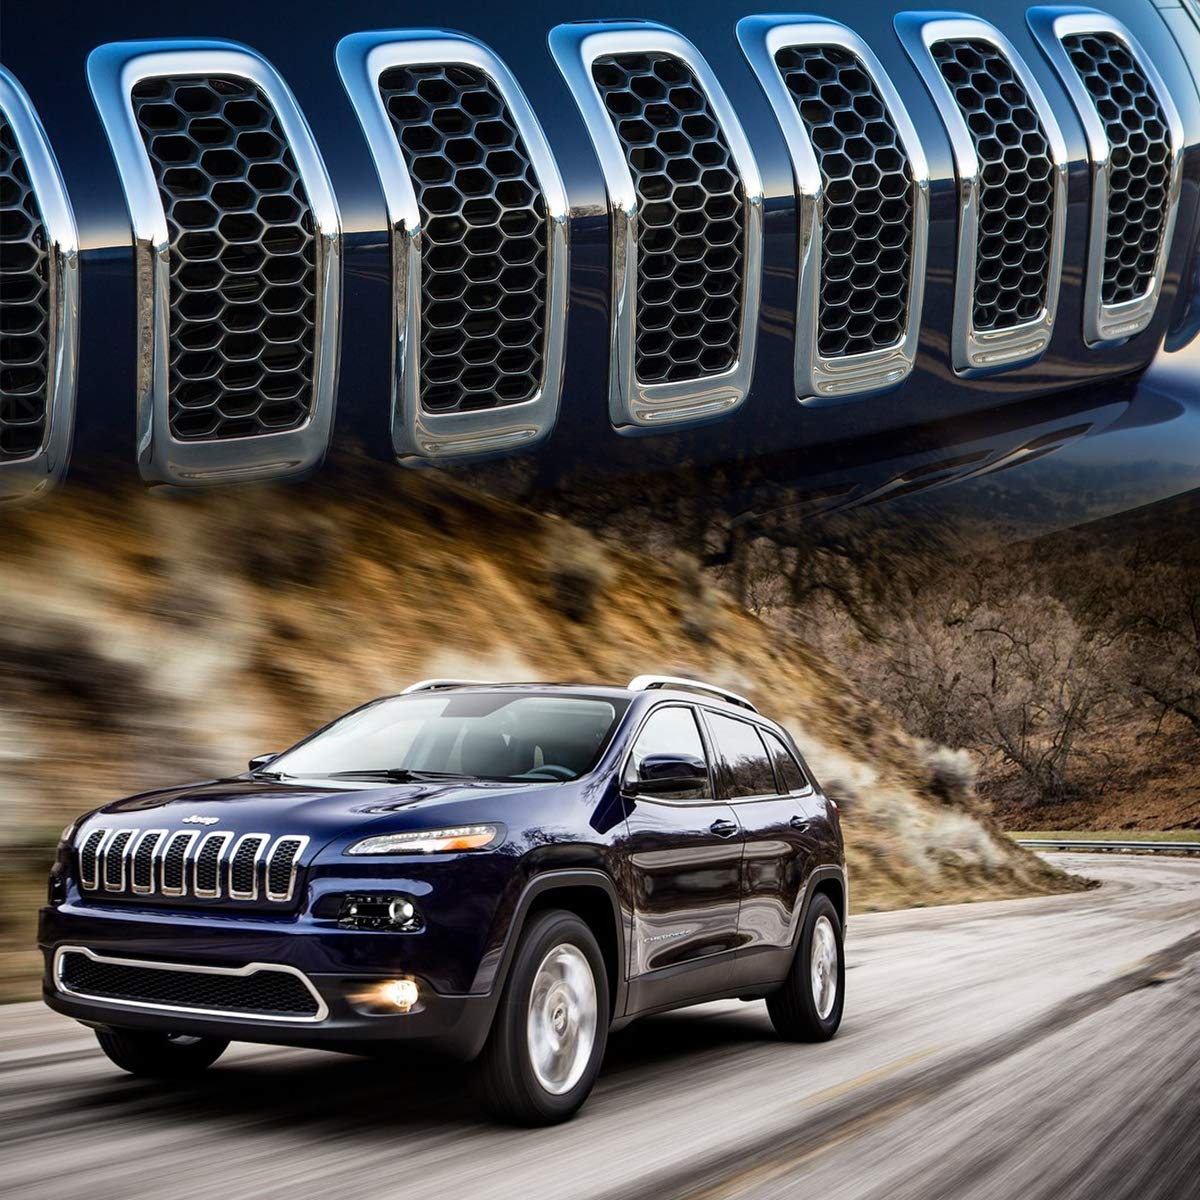 Silver and Black XBEEK 2014-2018 Jeep Cherokee Gloss Front Grille Grill Inserts Covers Gloss 7pcs